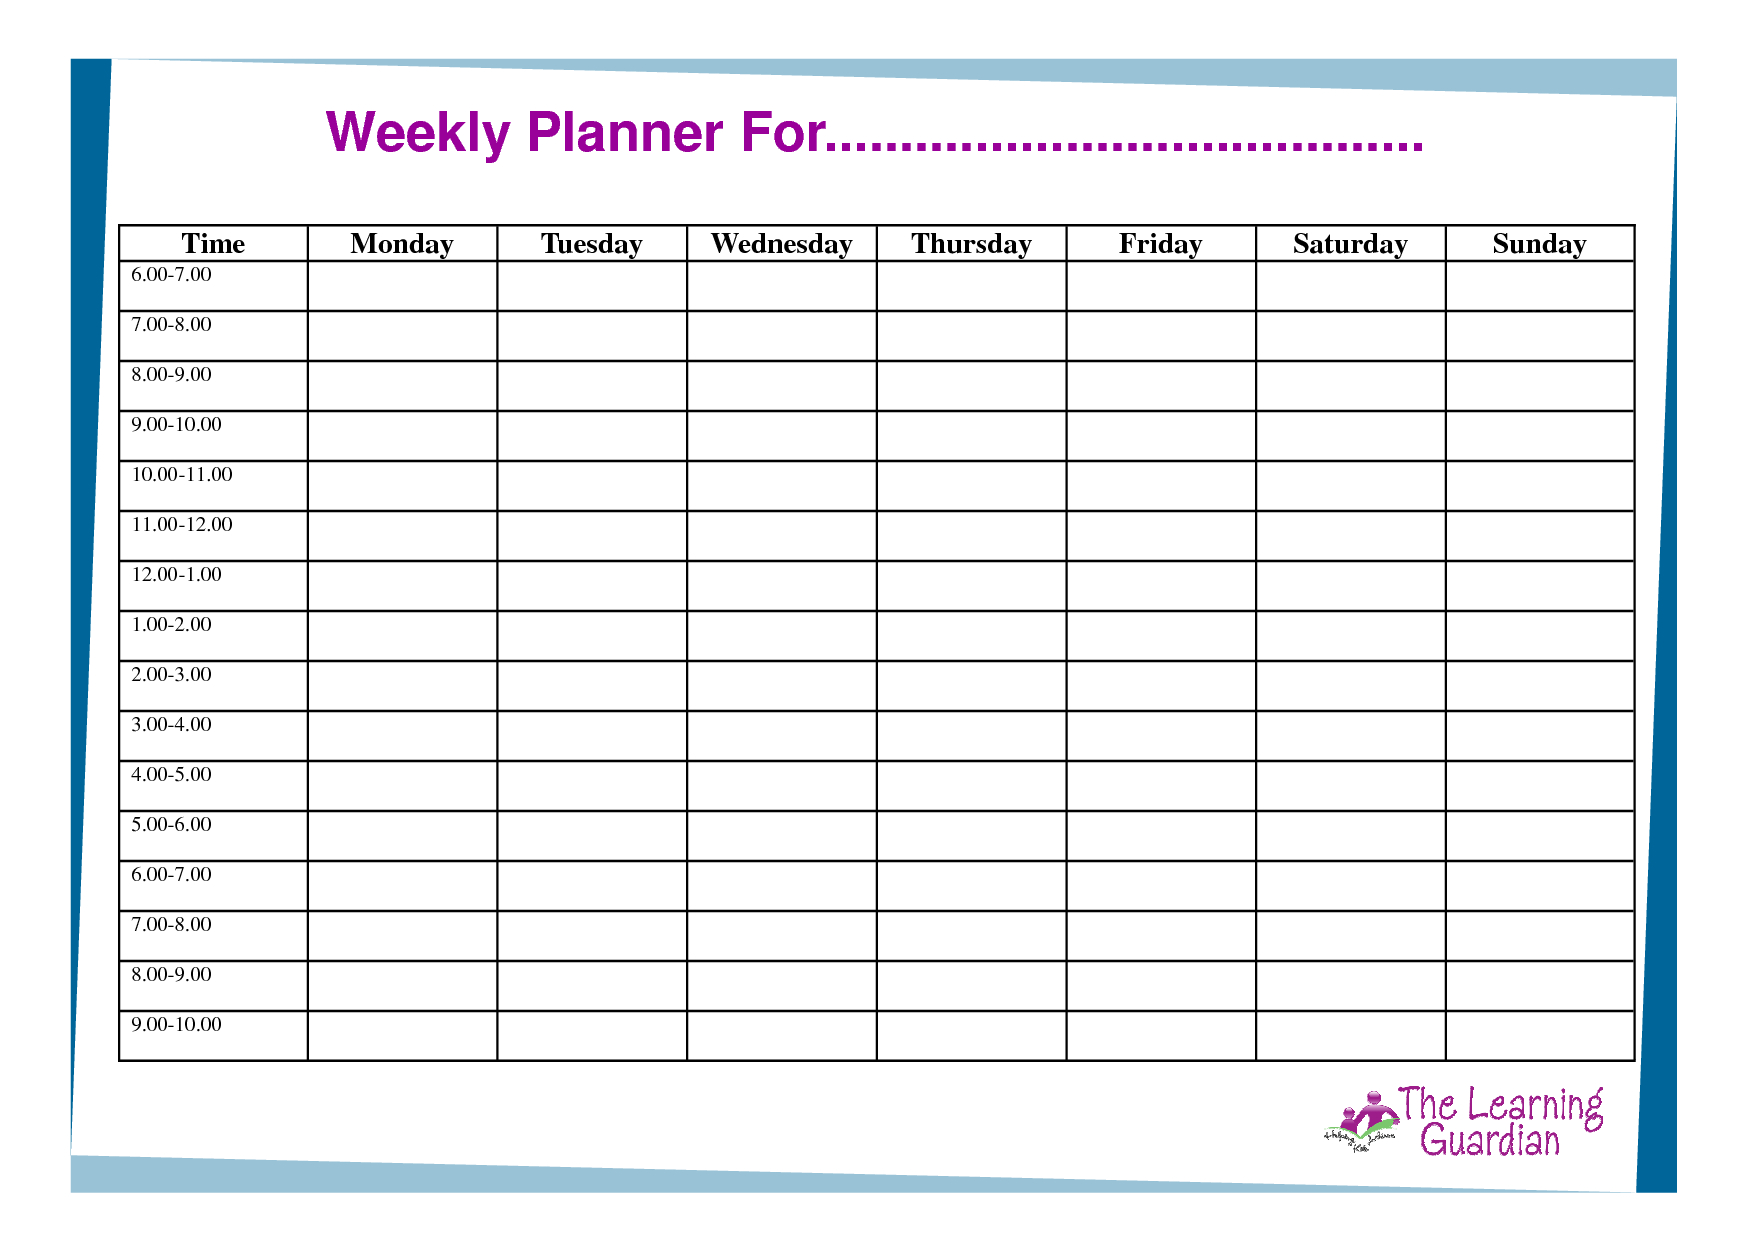 Free Printable Weekly Calendar Templates | Weekly Planner For Time for Printable Blank Weekly Calendar With Times